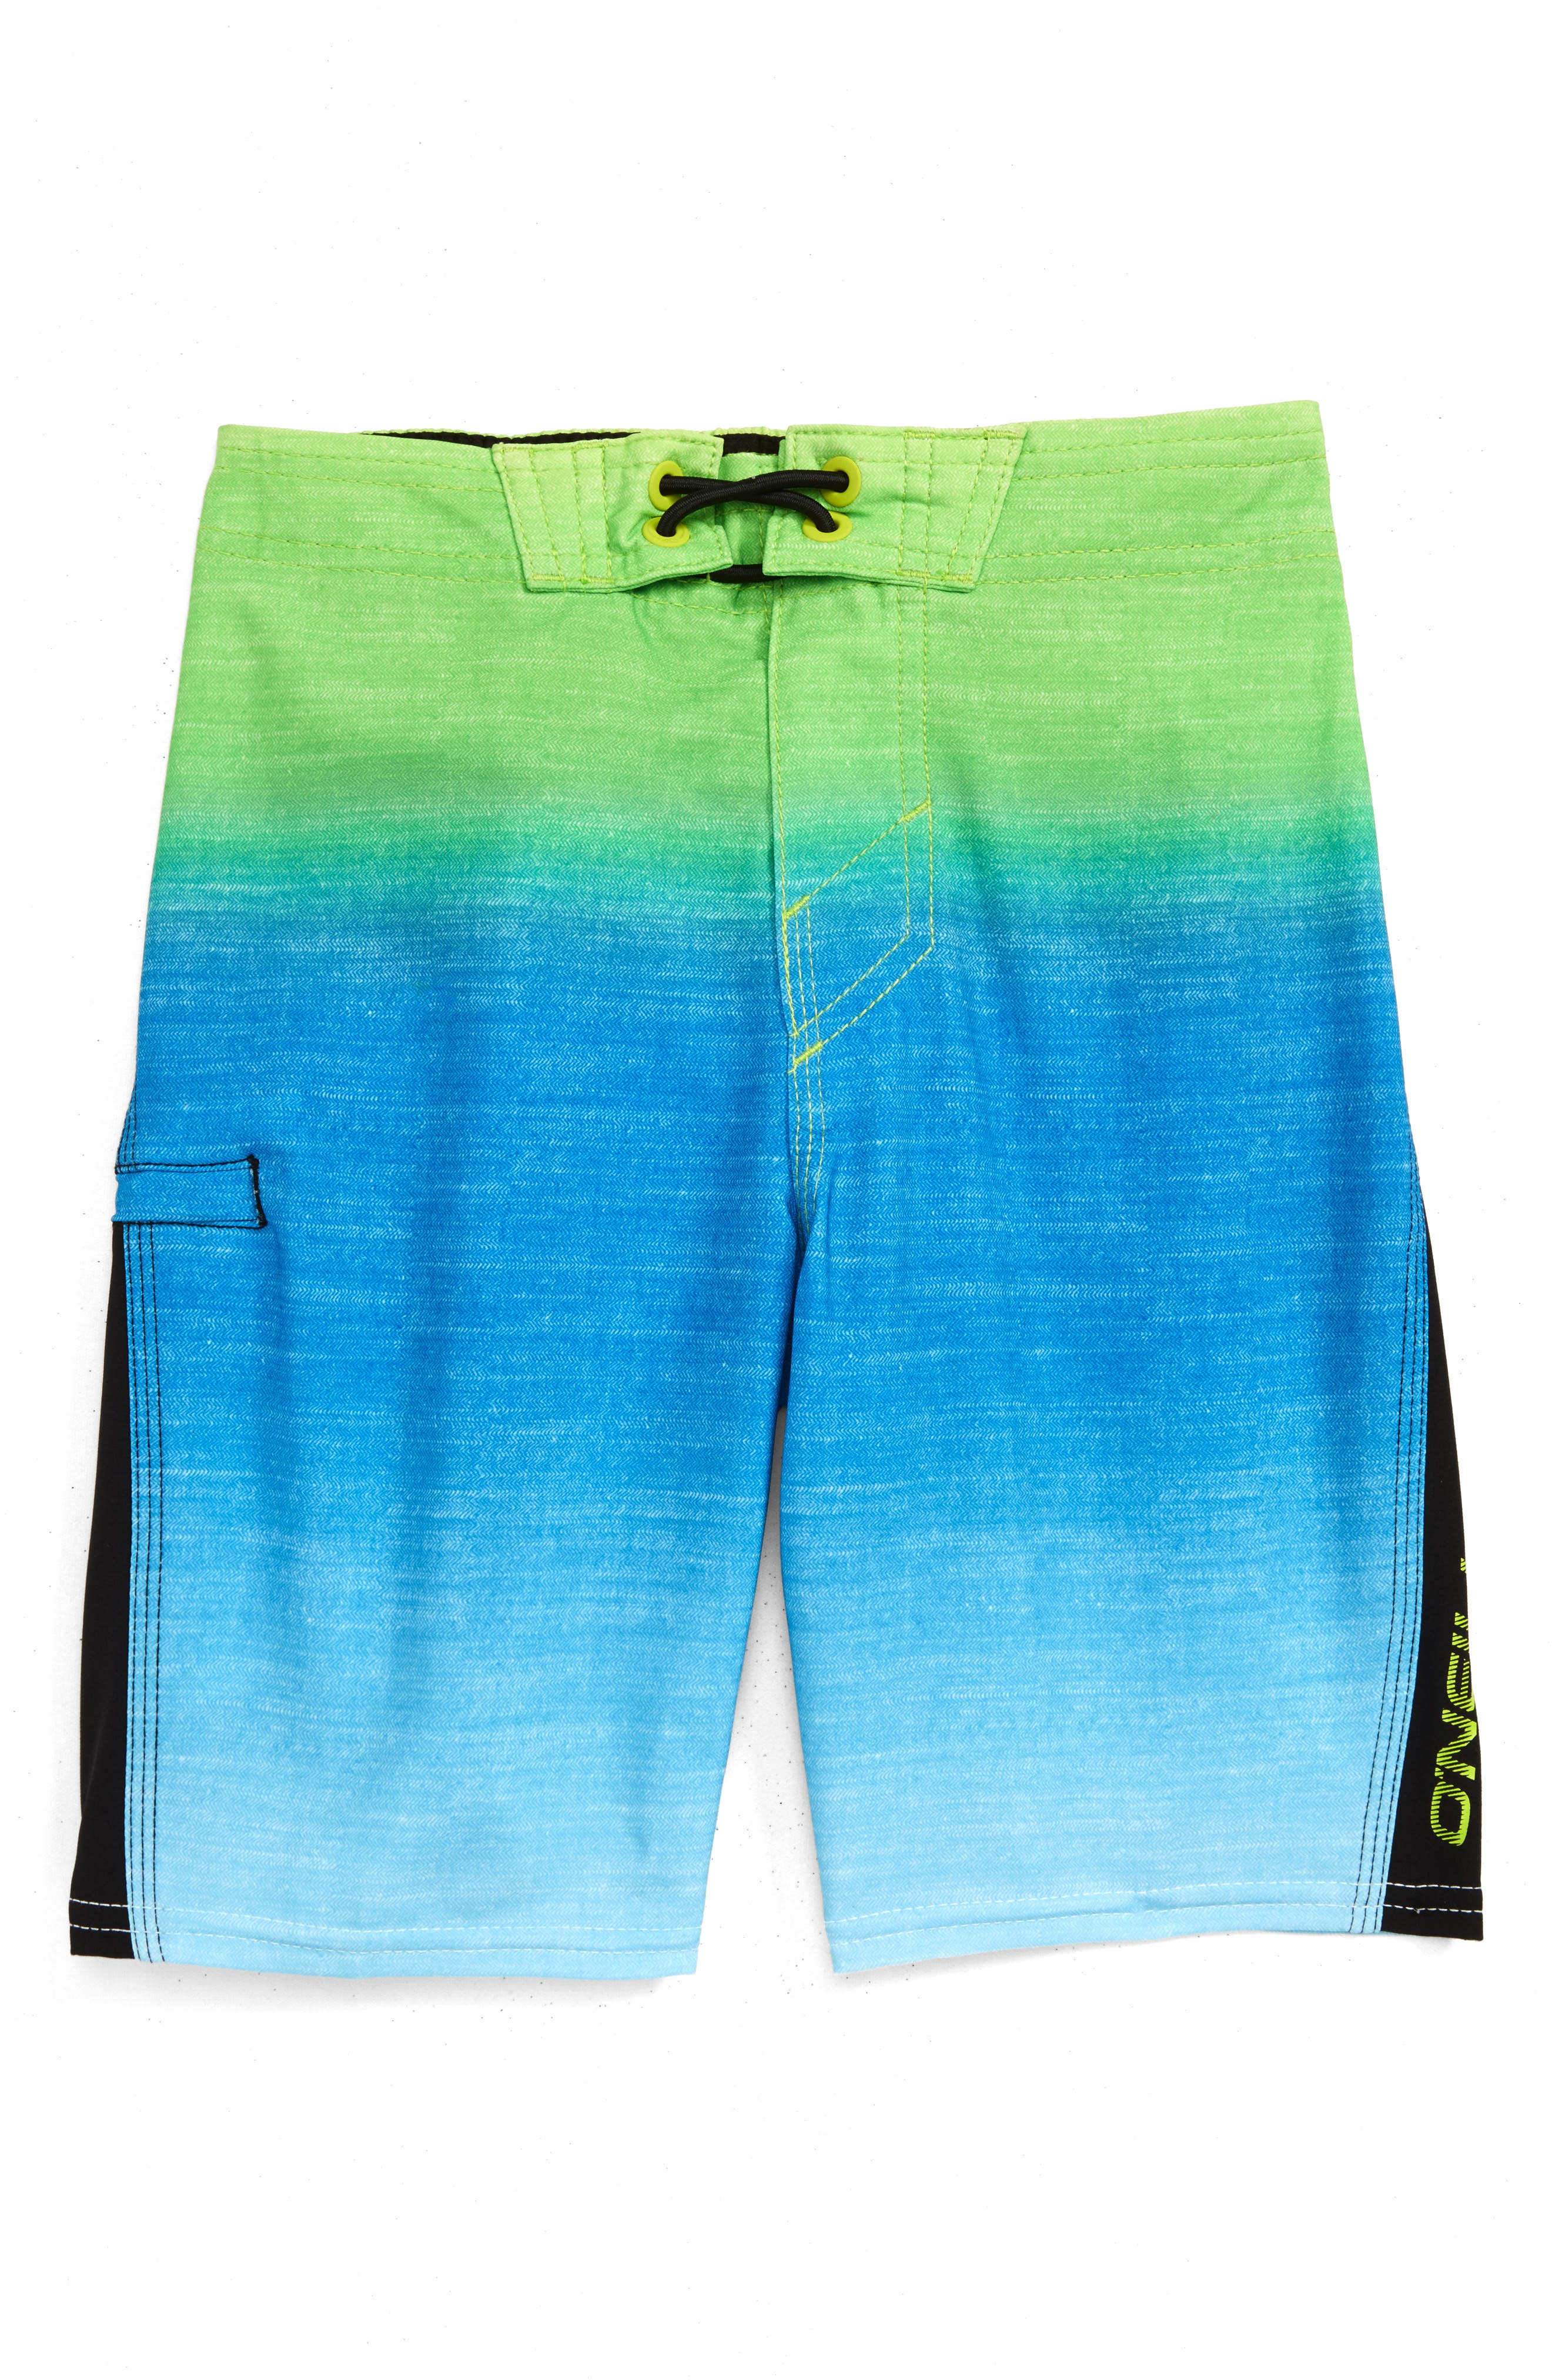 O'Neill Sneakyfreak Fader Board Shorts (Toddler Boys & Little Boys)